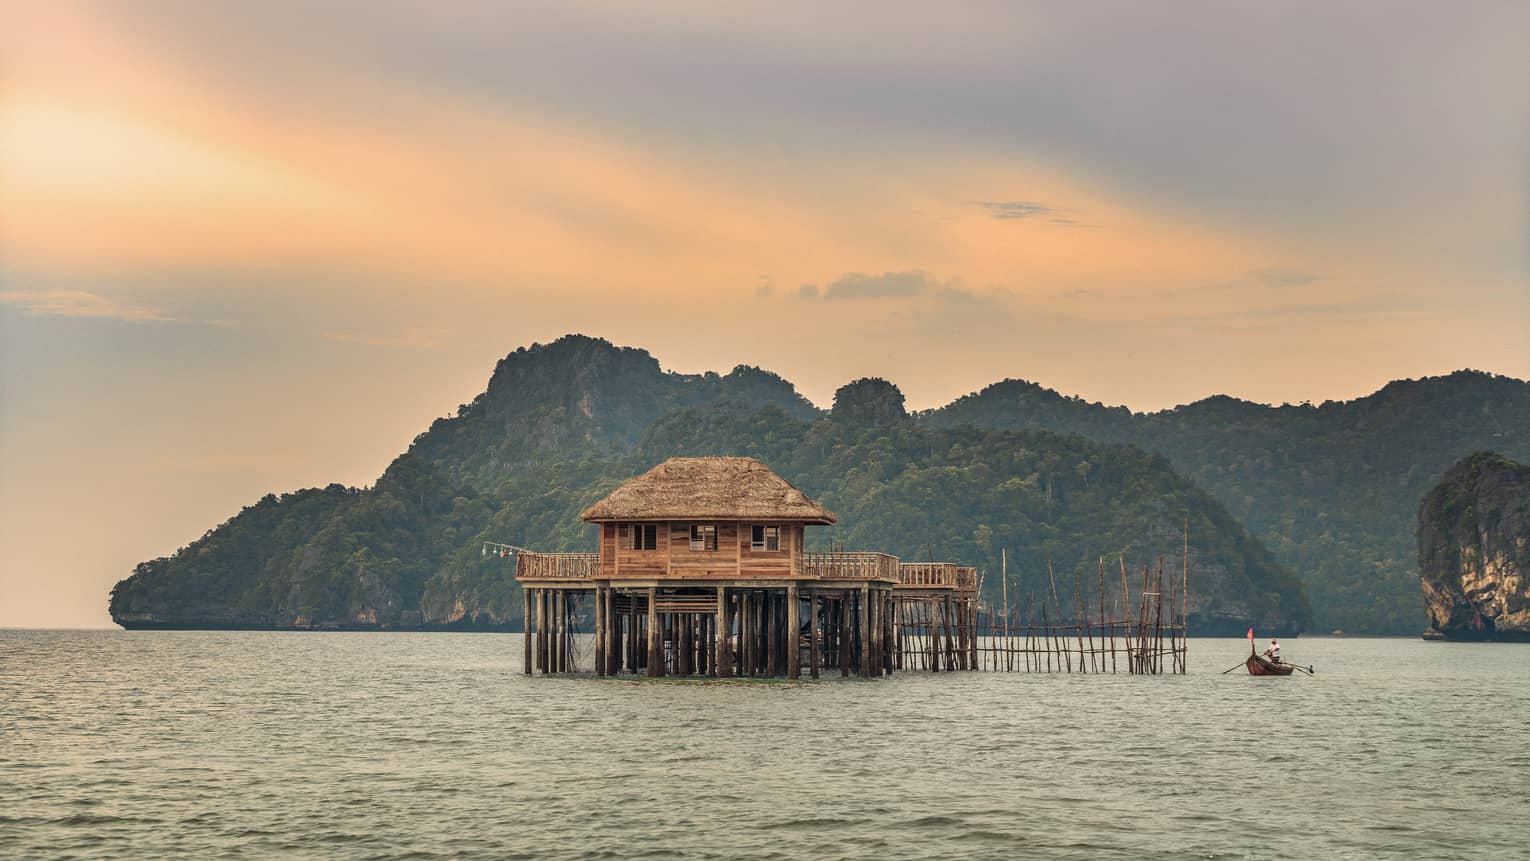 A sunsetting over a lake with huts on it in Langkawi